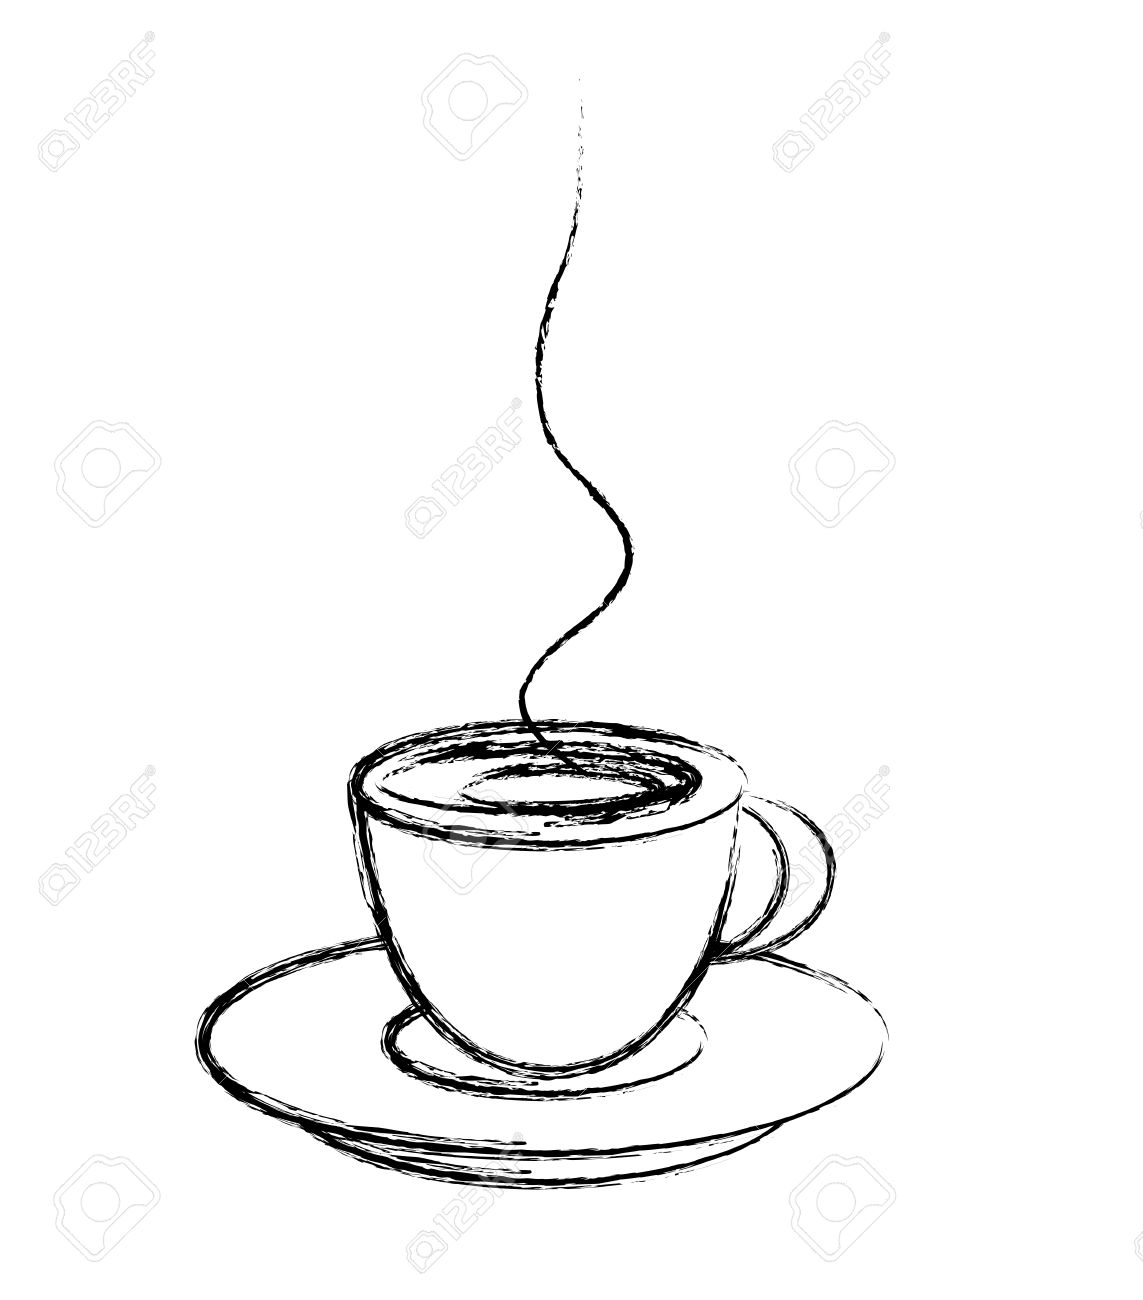 Coffee cup sketch - Stylized Cup Of Coffee Drawing Style Vector Stock Vector 23650447